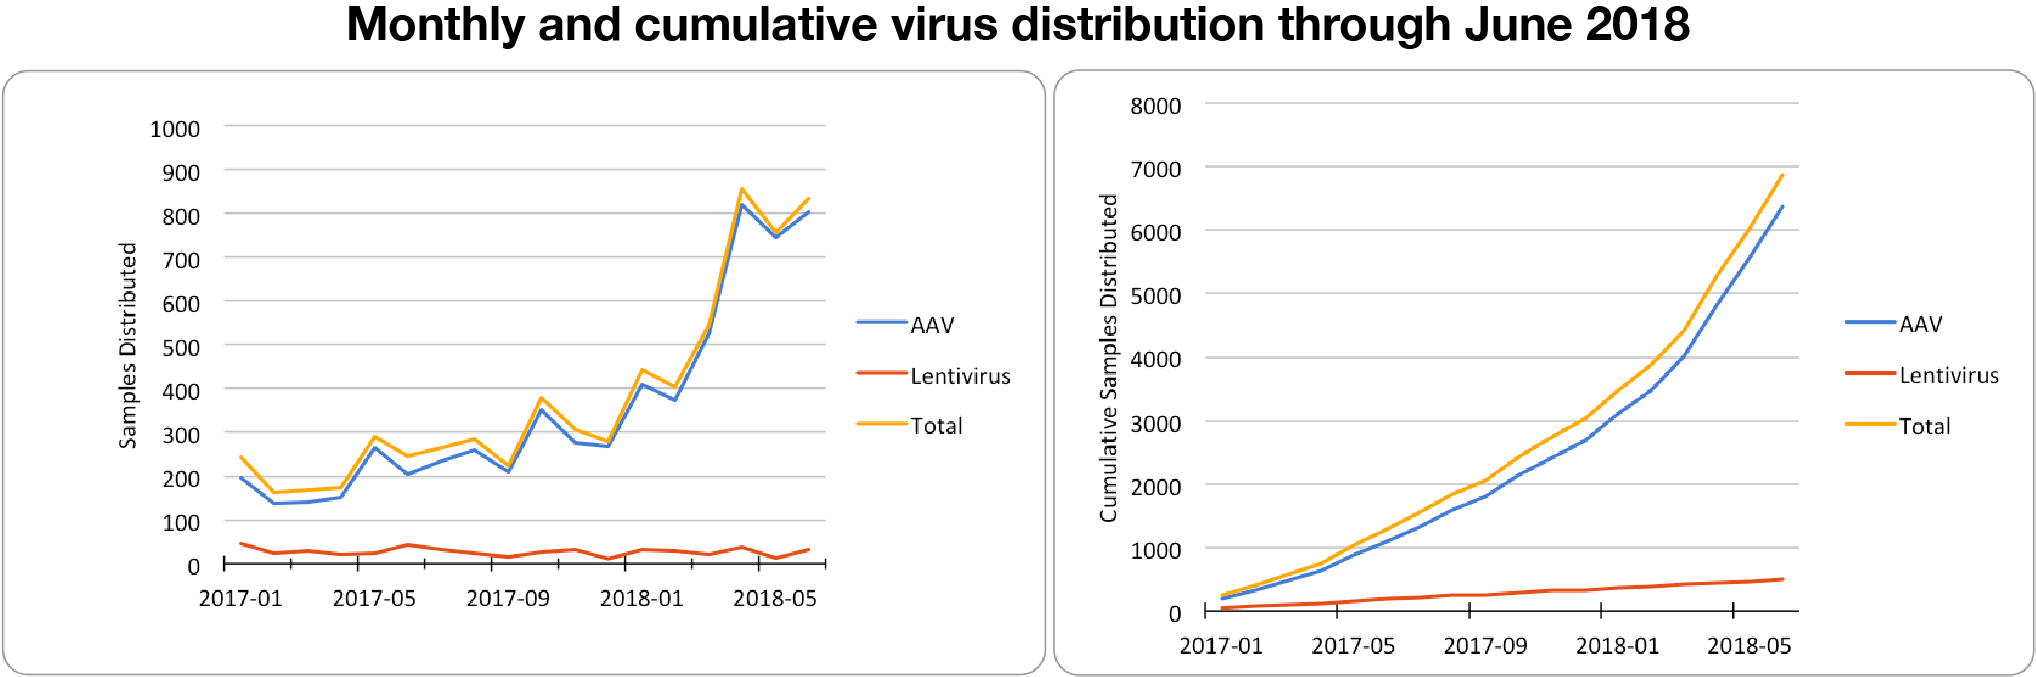 Monthly and cummulative AAV and lentivirus distribution from Addgene through June 2018